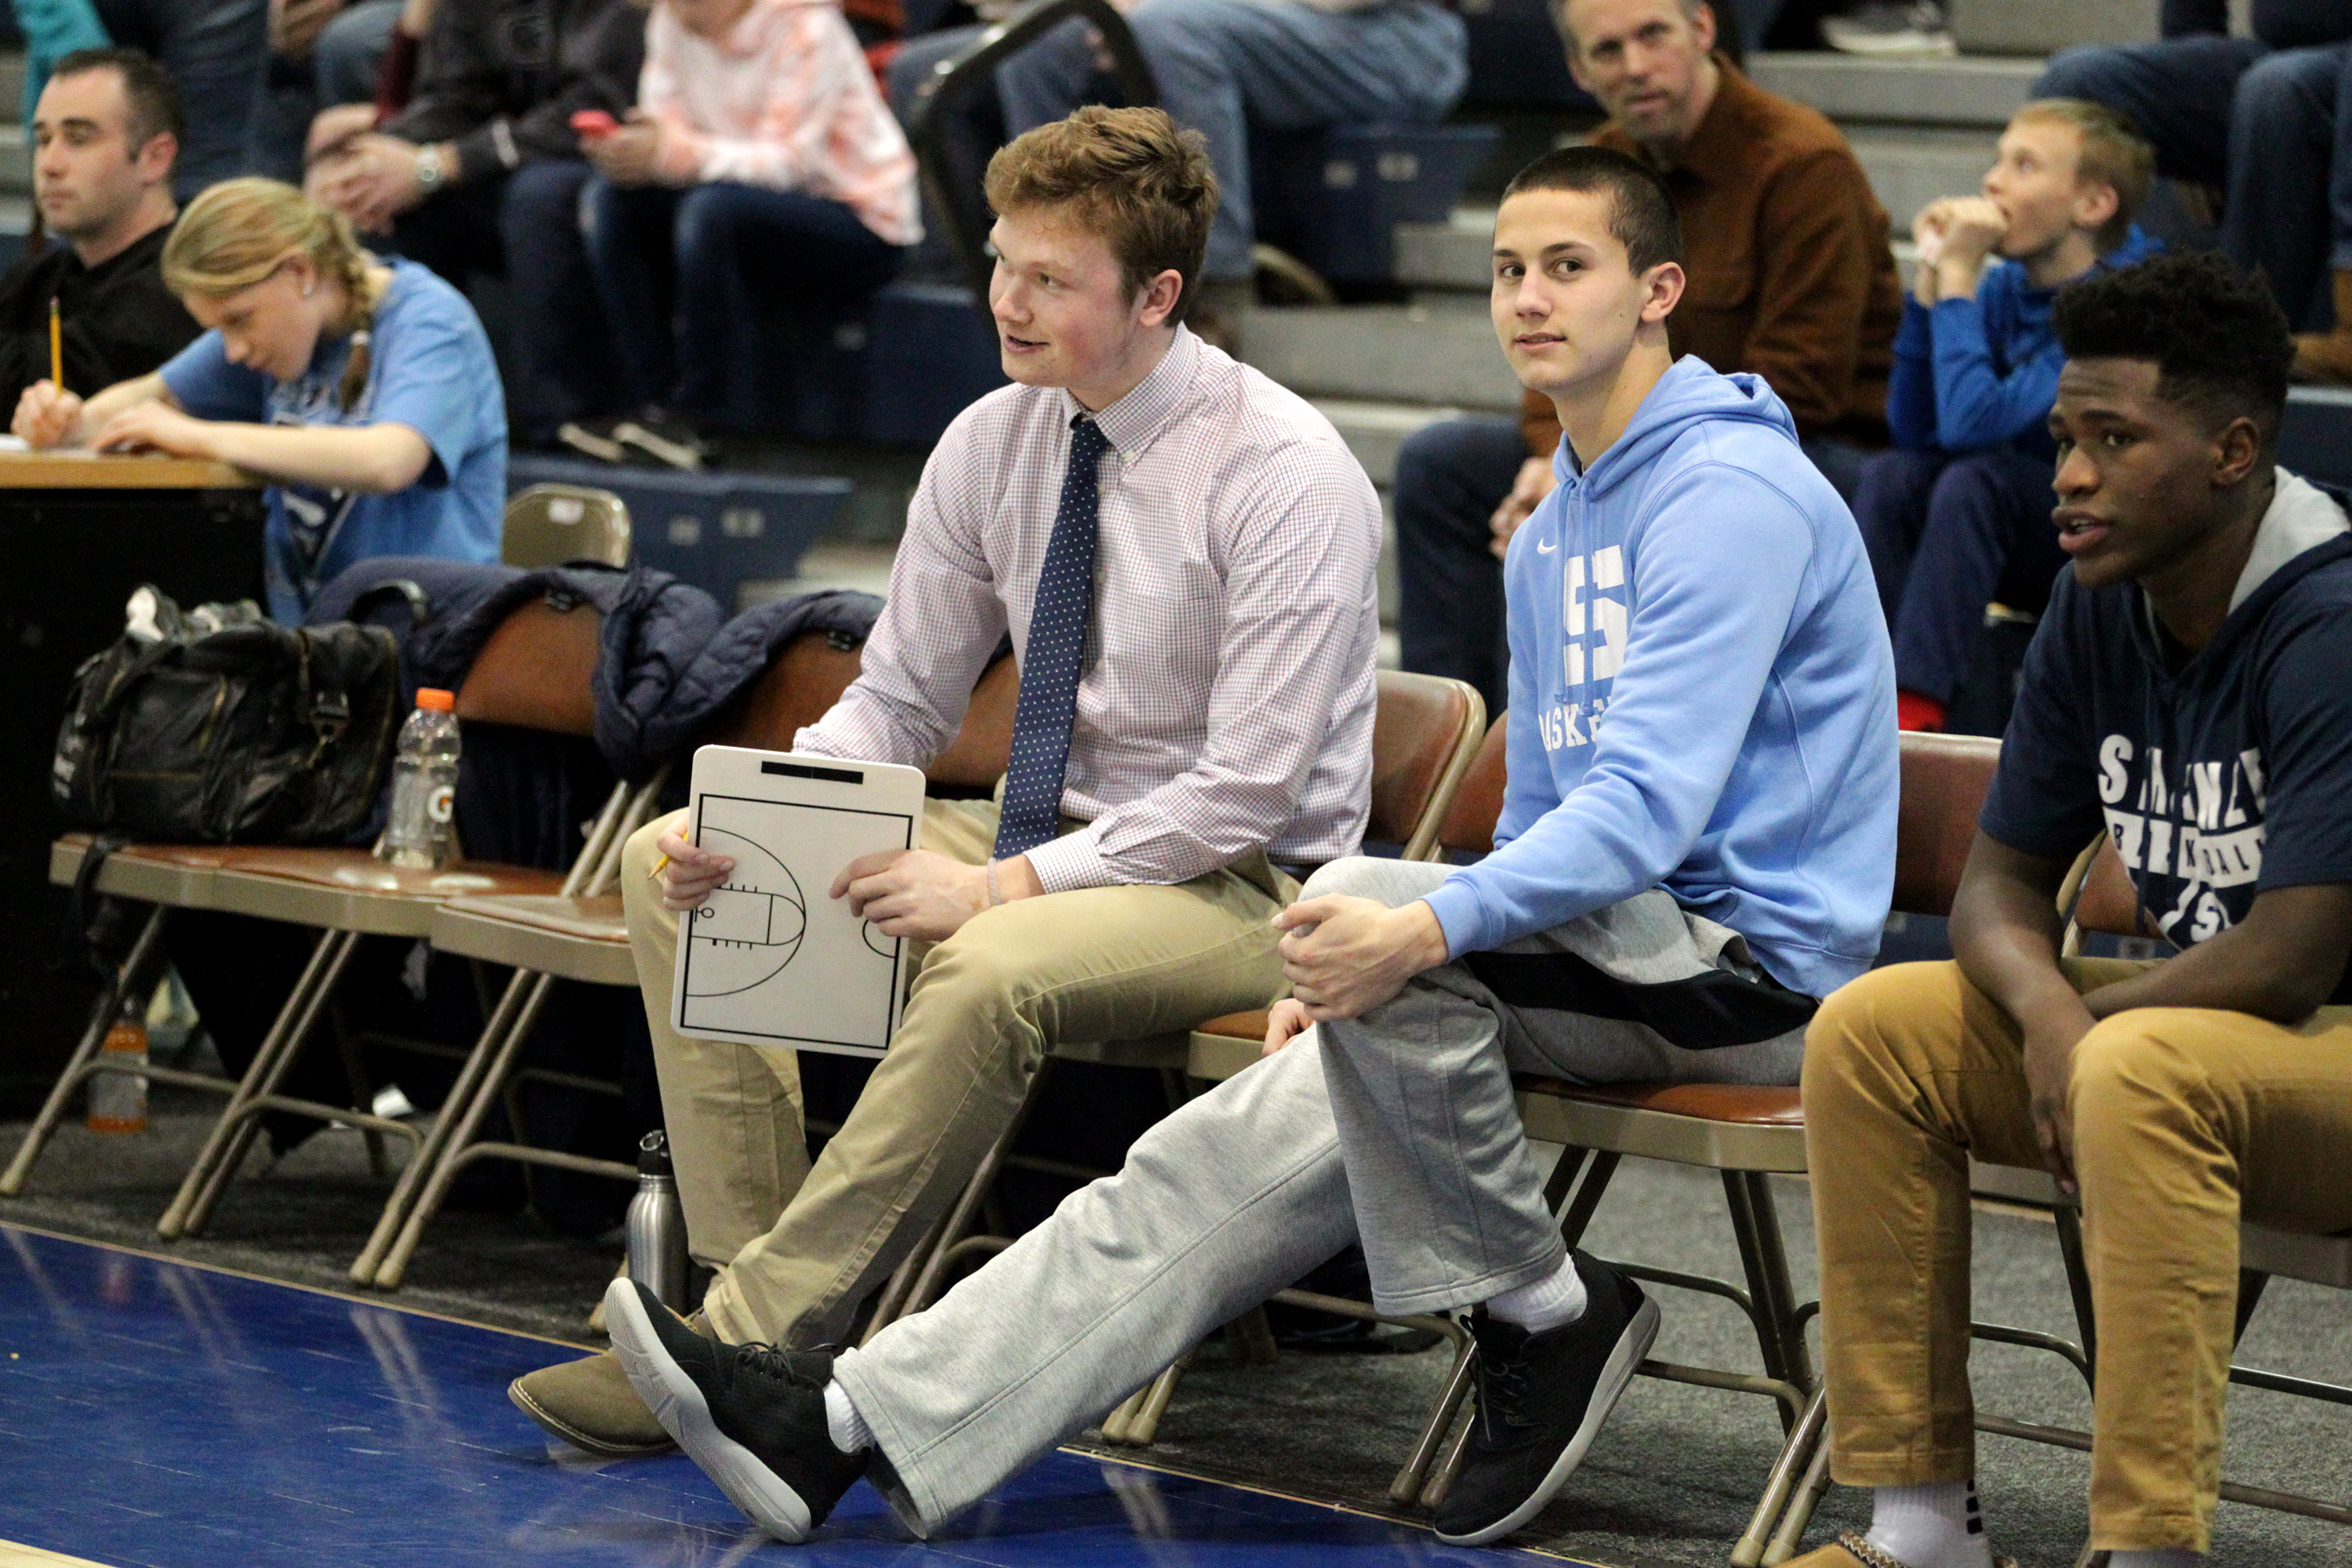 Injured Shawnee players Sean Heine (left) and Pat Kernan during the game against Woodbury in the 2nd quarter of the NJSIAA Tournament of Champions quarterfinal.